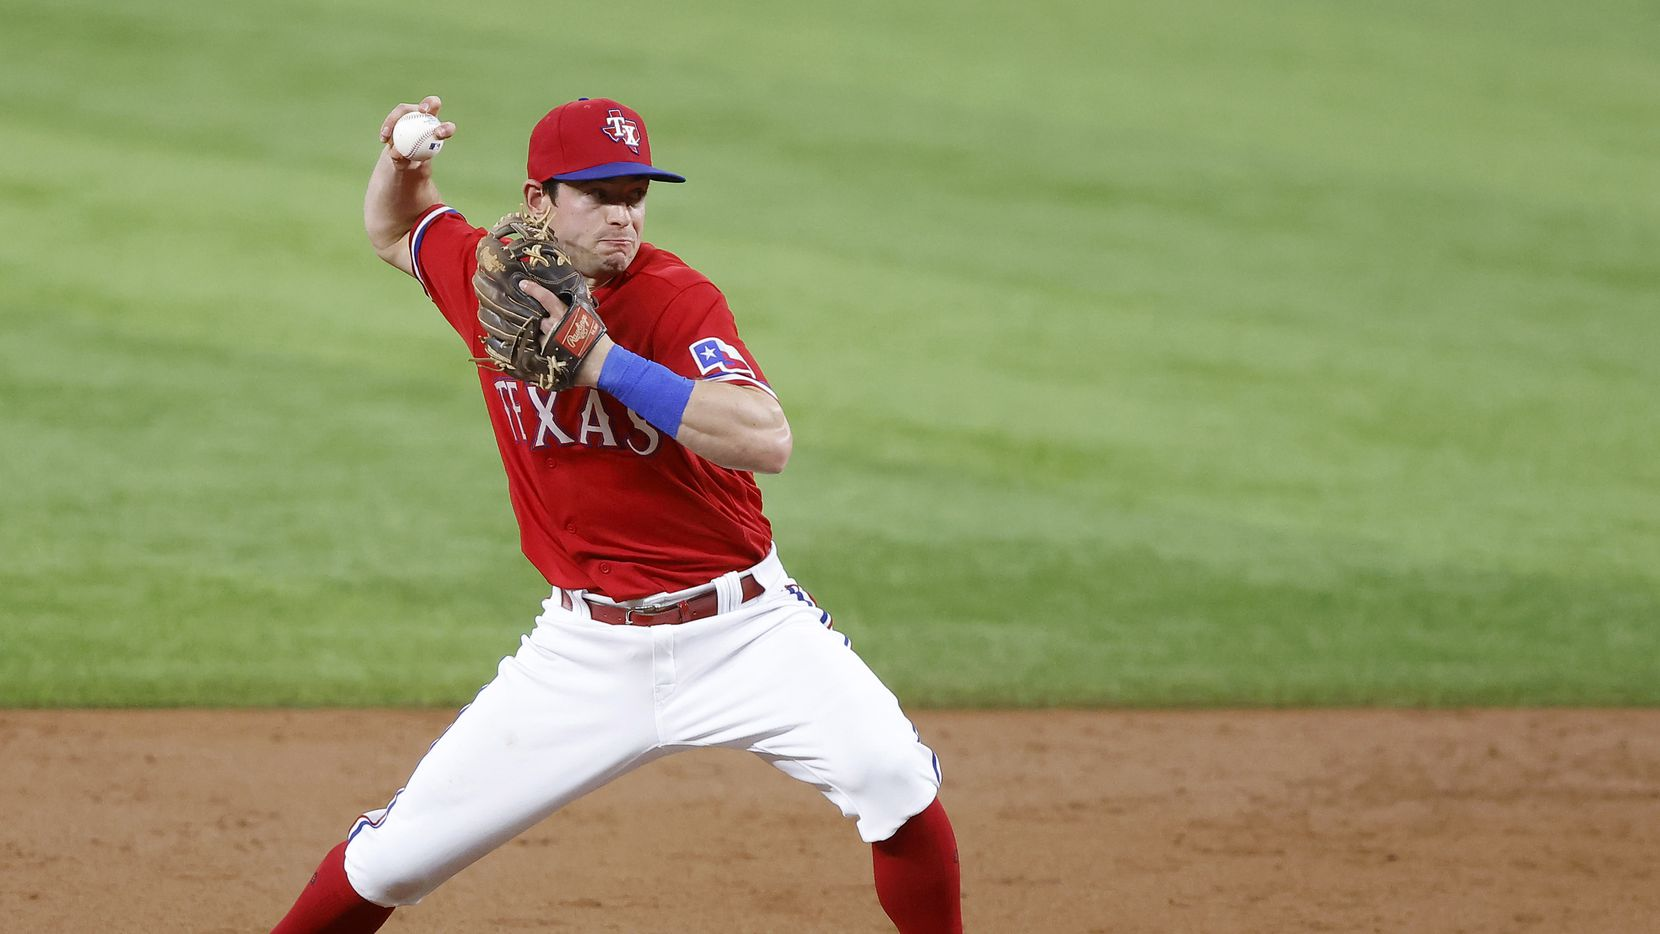 Texas Rangers second baseman Nick Solak (15) turns the front end of a double play attempt against the Houston Astros in the second inning at Globe Life Field in Arlington, Texas, Friday, May 21, 2021. Houston Astros batter Yuli Gurriel was out at second and Yordan Alvarez scored form third.